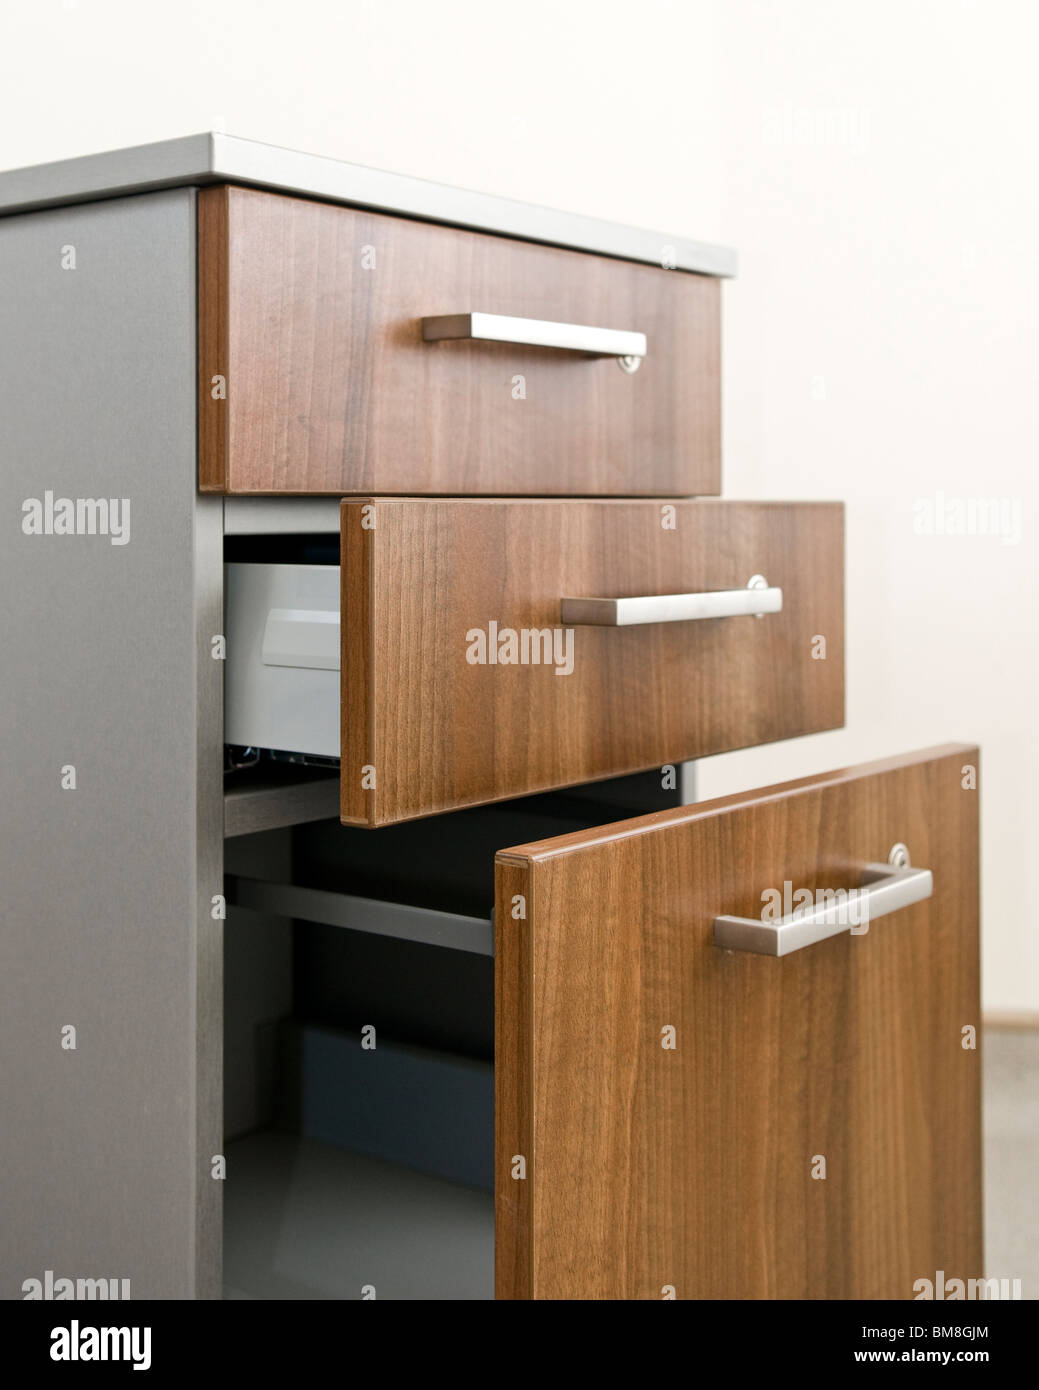 Drawer unit with opened drawers. - Stock Image